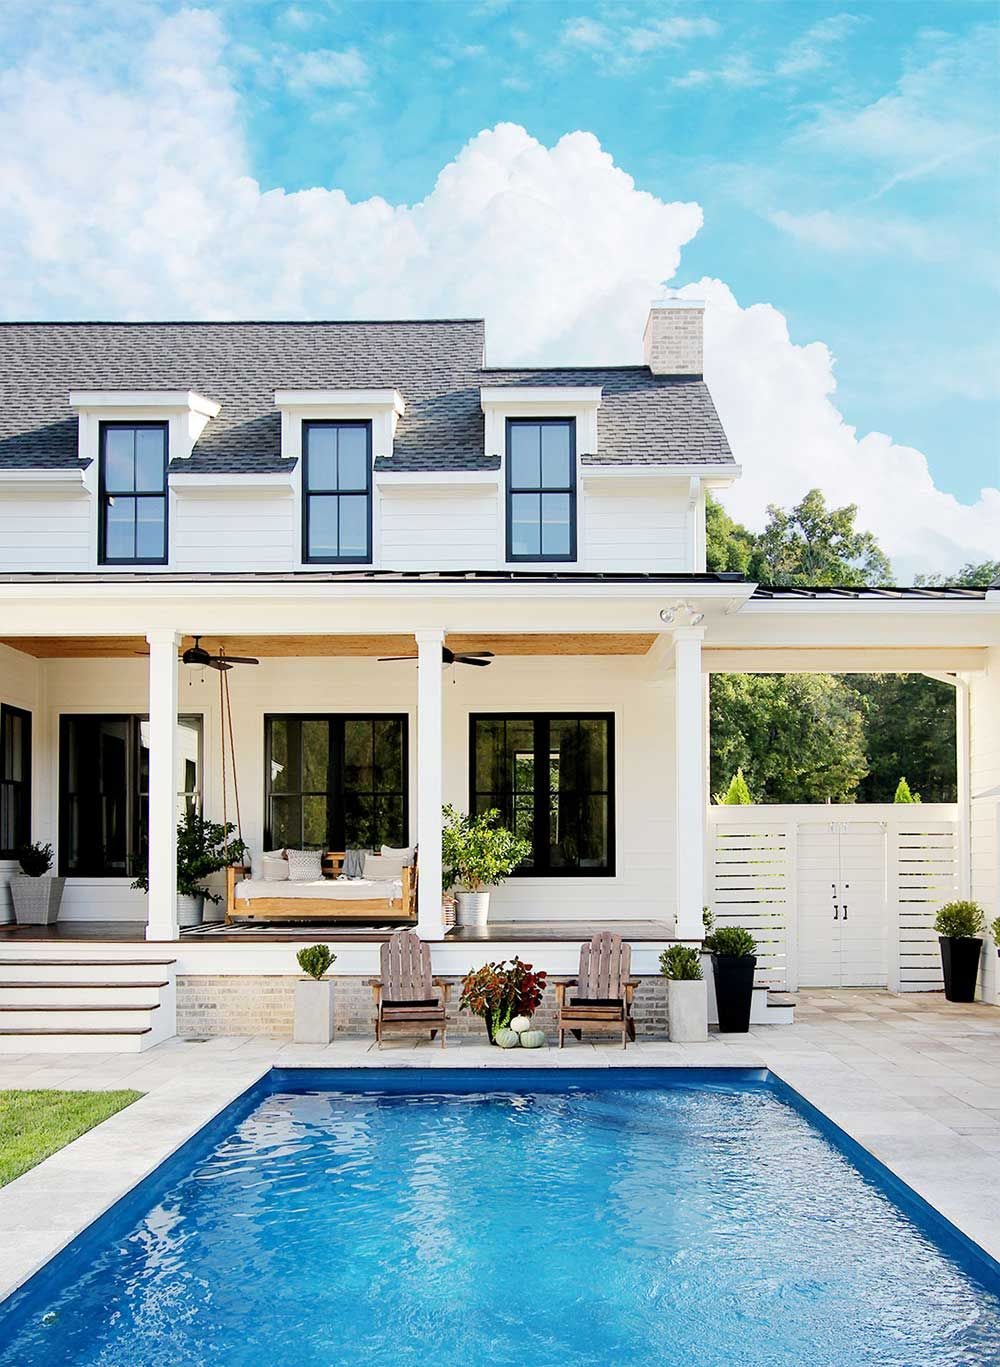 Detached Vs Attached Garage Plank And Pillow Pool House Plans Dream House Exterior Modern Farmhouse Exterior